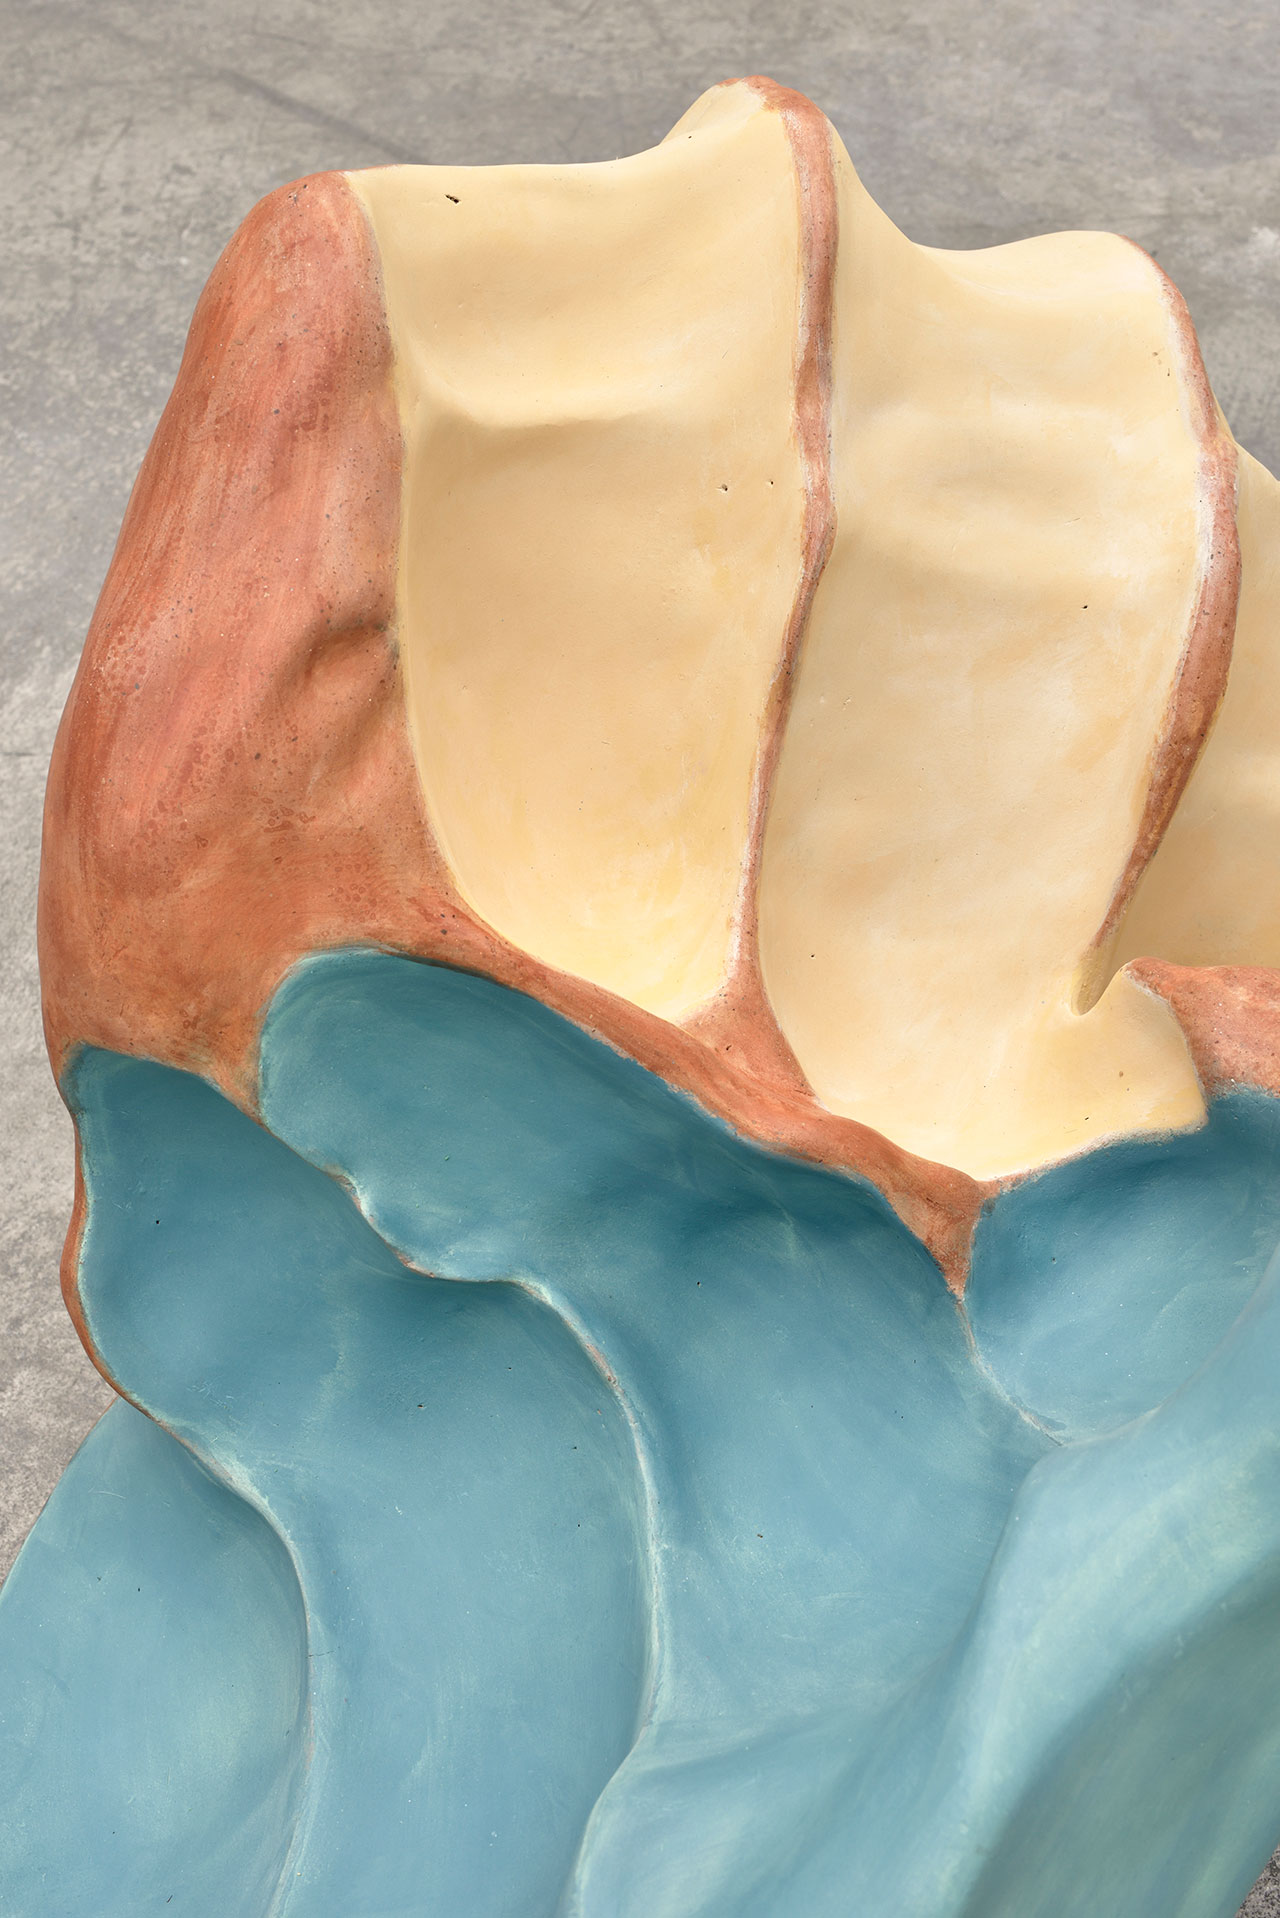 Giuseppe Penone, Avvolgere la terra – il colore delle mani (To Enfold the Earth– the colour of the hands) (detail), 2014. Terracotta, engobe of quartz color. Approx. 32 11/16 x 47 1/4 x 27 9/16 in. (83 x 120 x 70 cm). Photo by Rebecca Fanuele. Courtesy the artist and Marian Goodman Gallery.